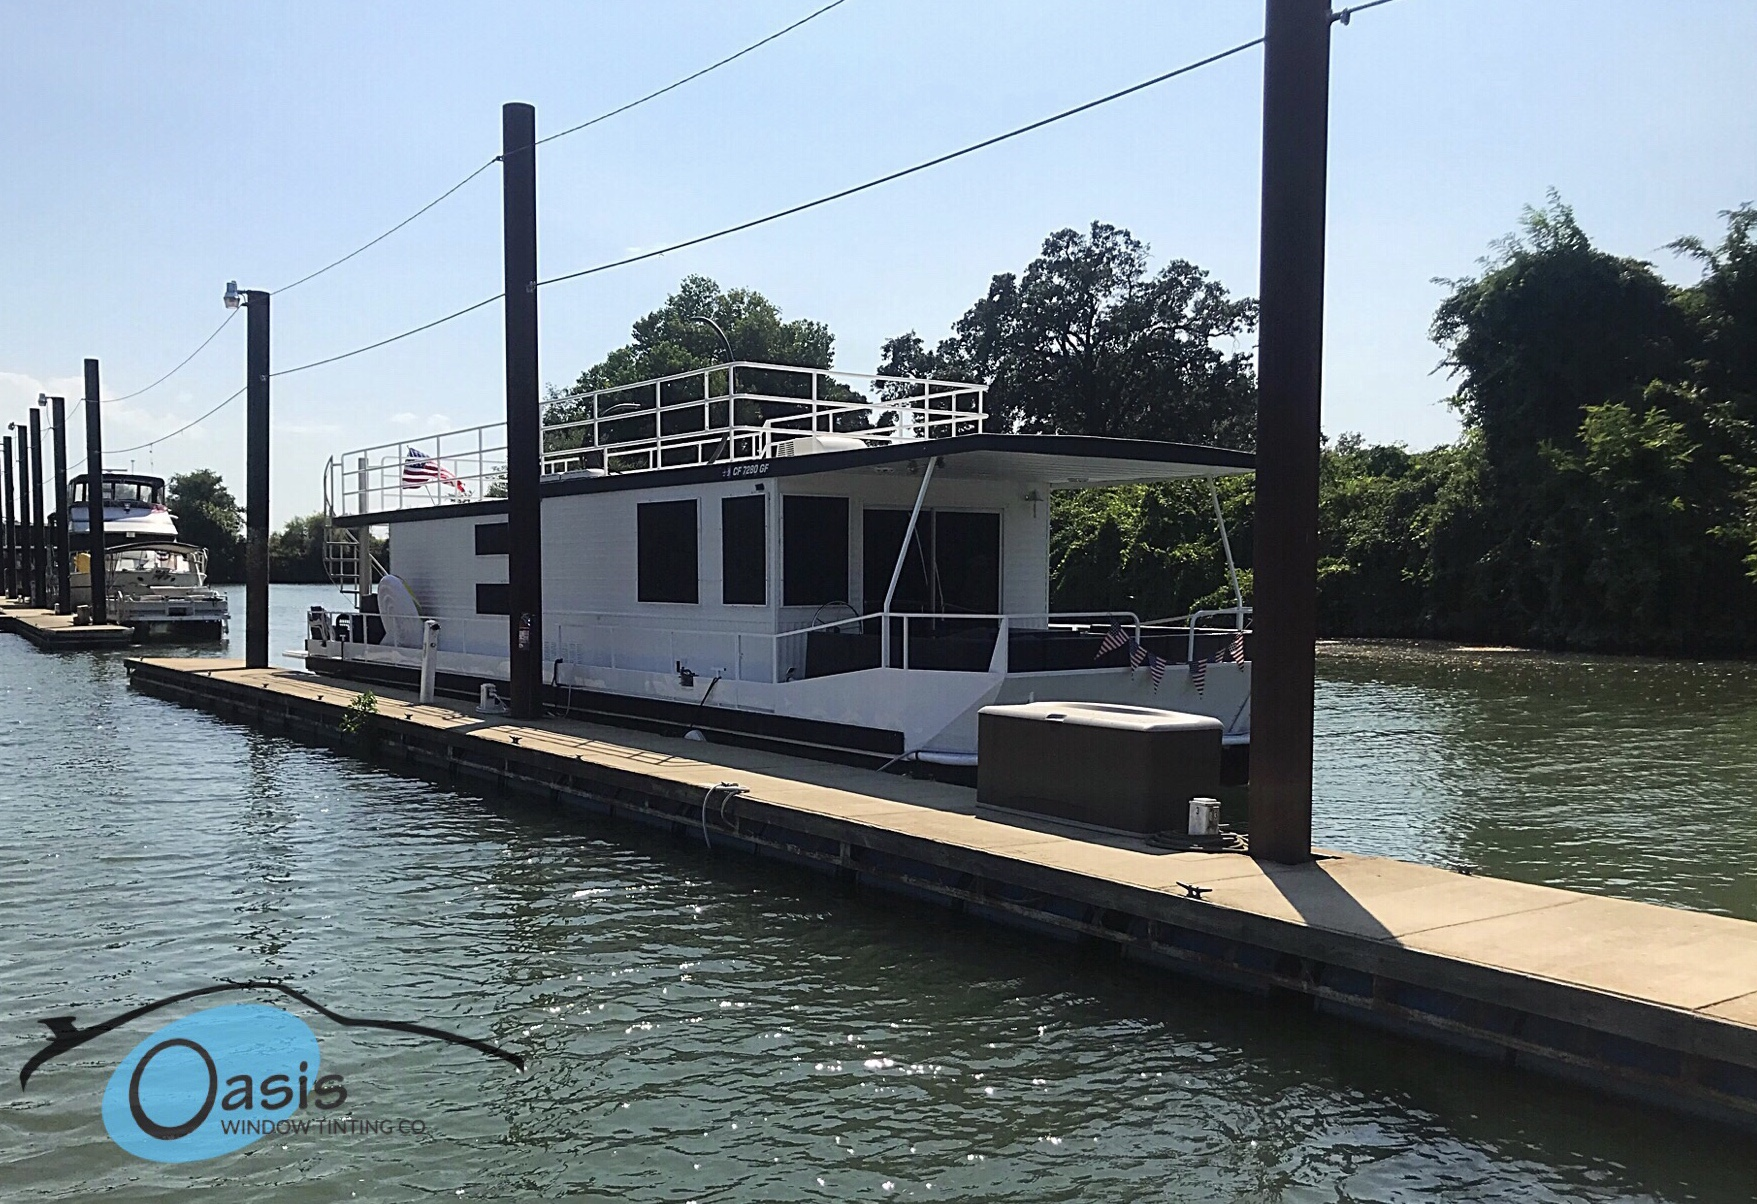 Carbon 5% on this houseboat